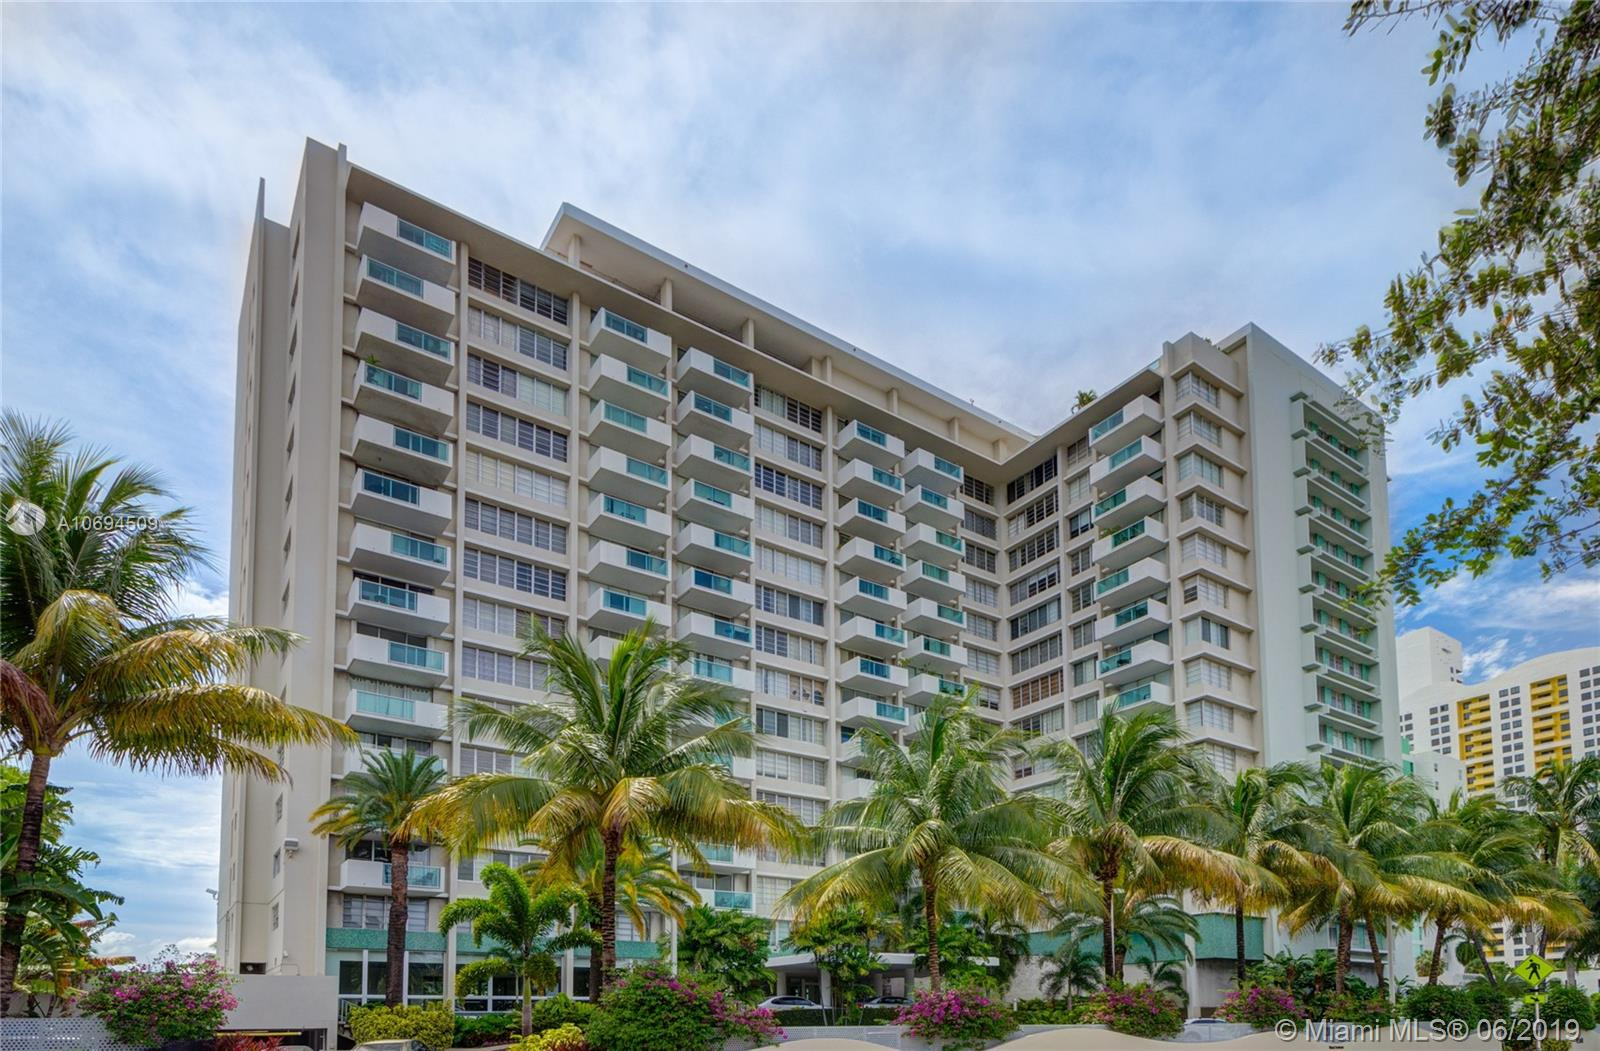 Mirador South #1008 - 1000 West Ave #1008, Miami Beach, FL 33139